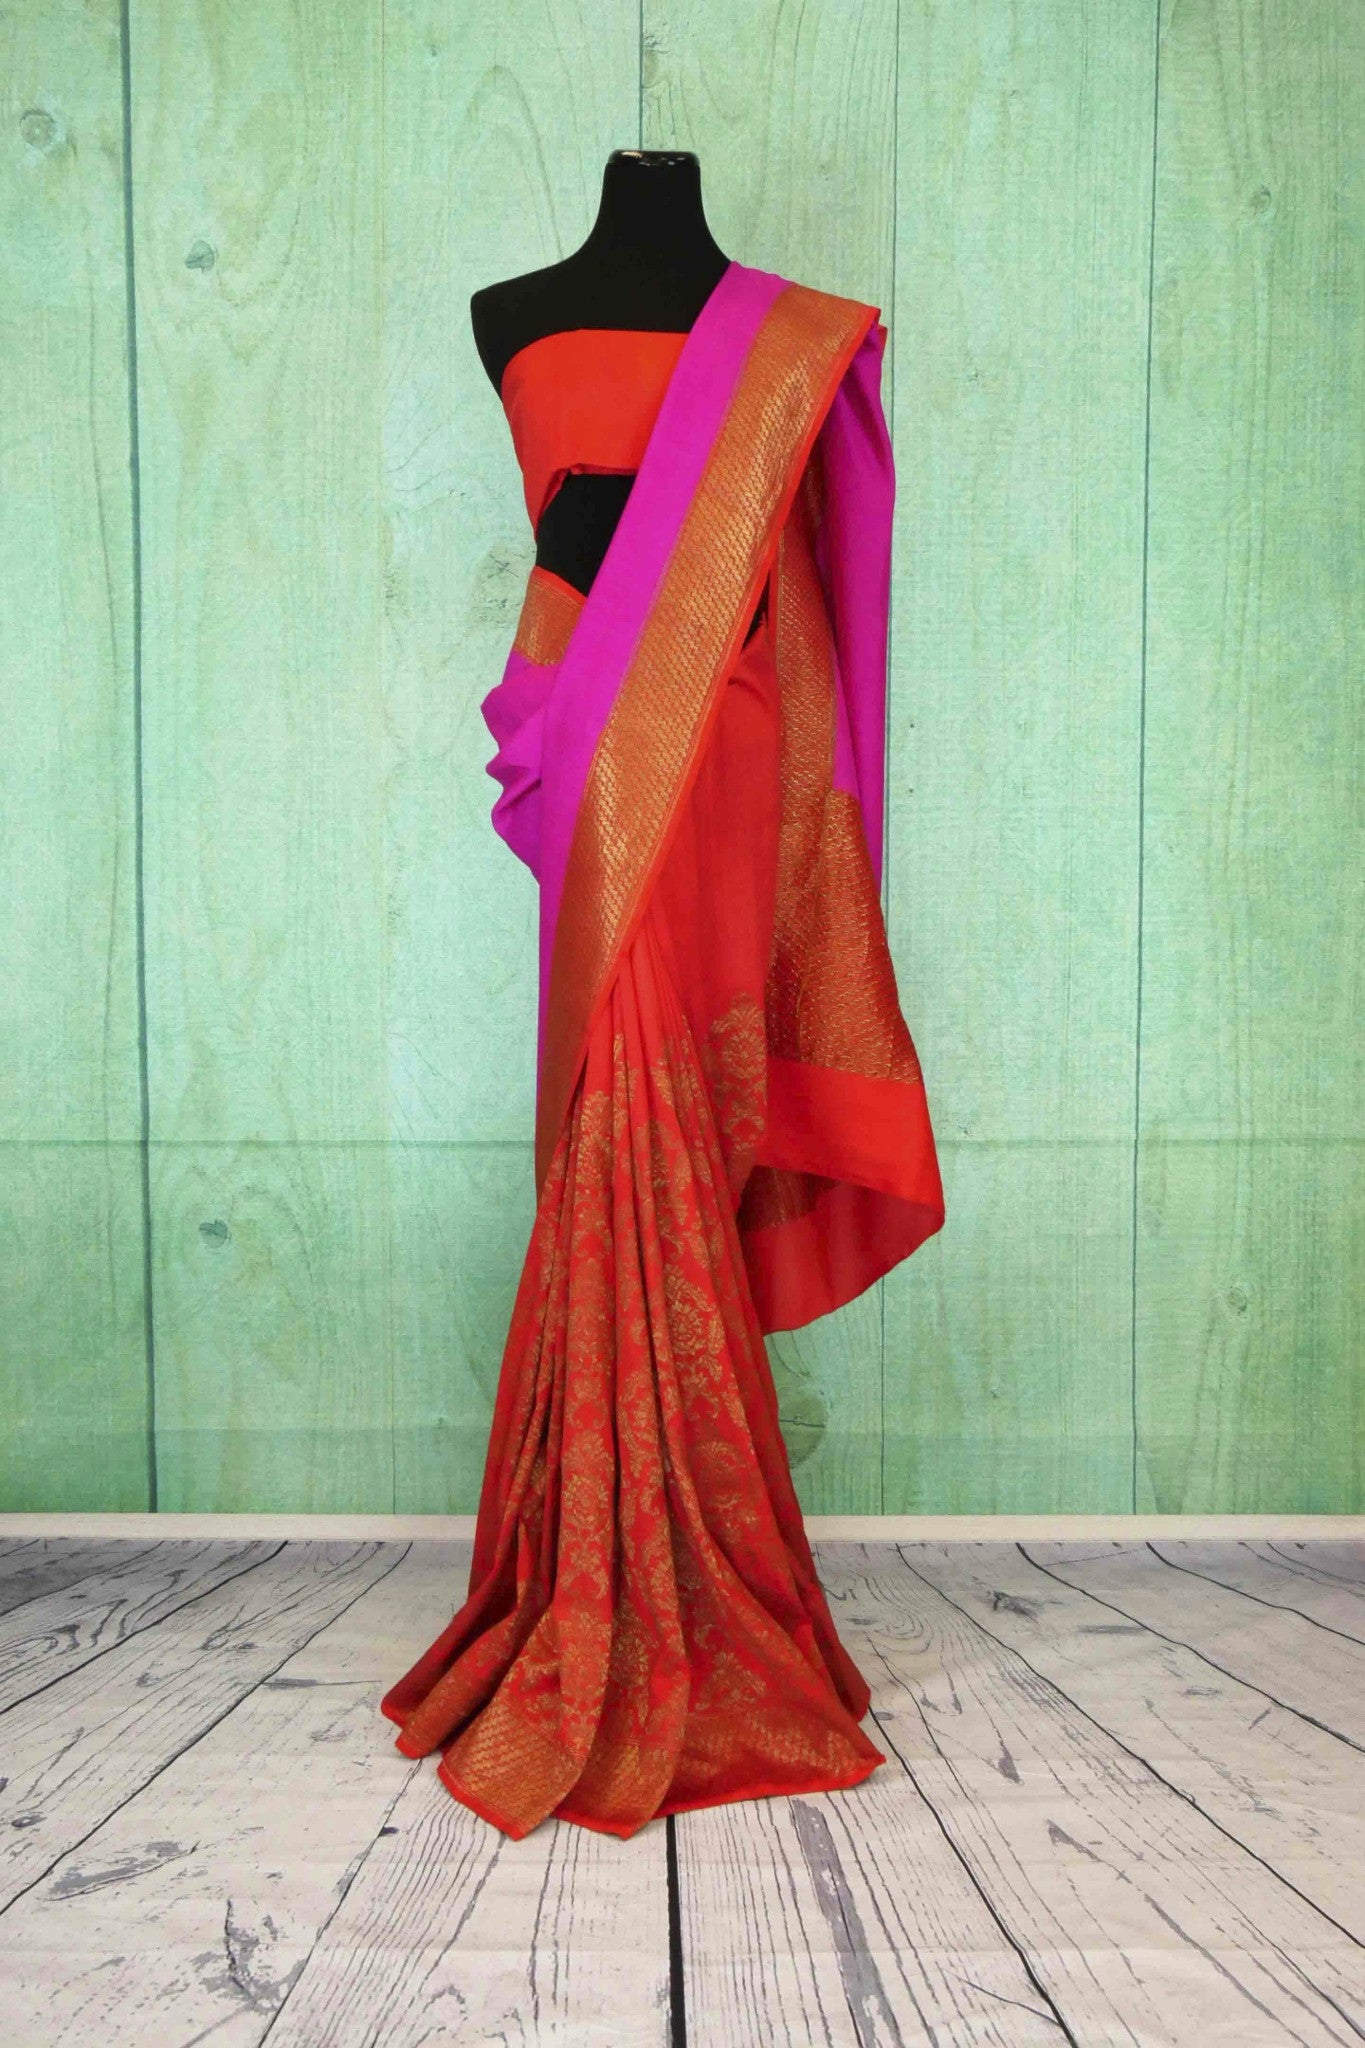 90C195 Traditional orange sari with golden pattern and pink trim. Buy this traditional georgette Banarasi saree in USA, ideal for ethnic functions and festivals, at our Indian clothing store - Pure Elegance.